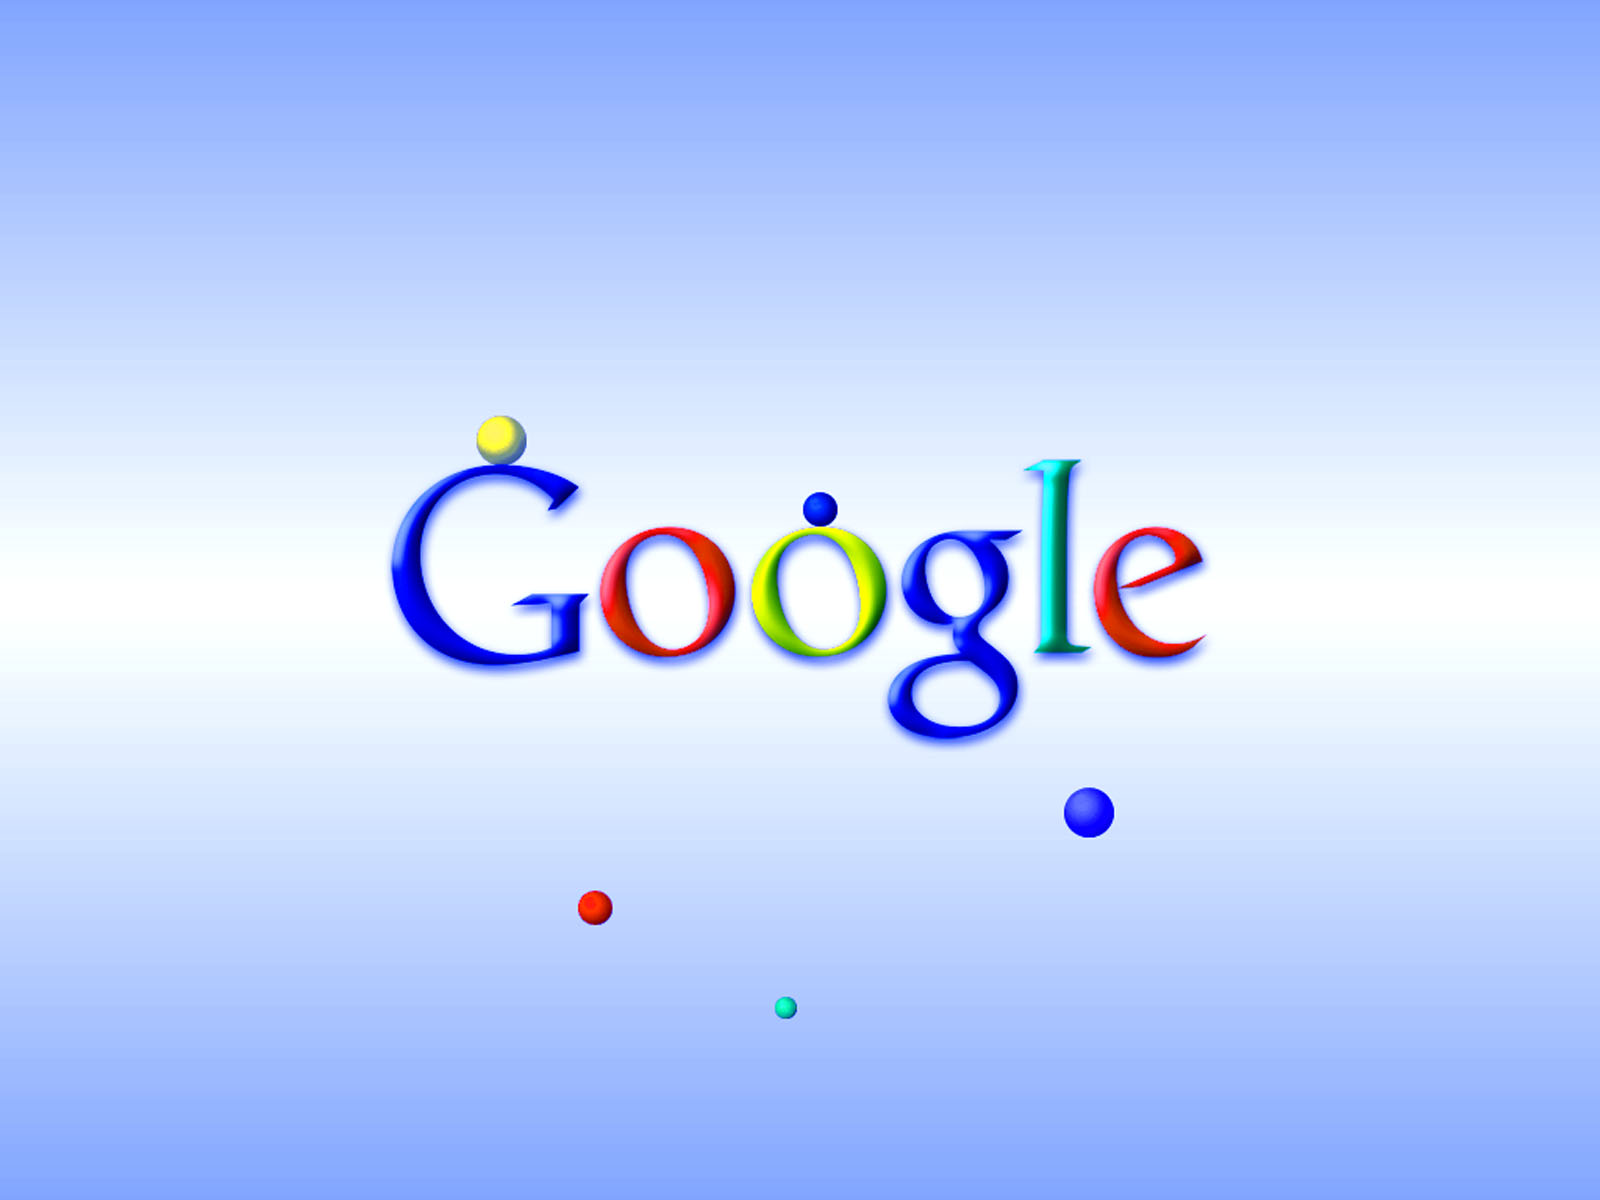 google free wallpaper